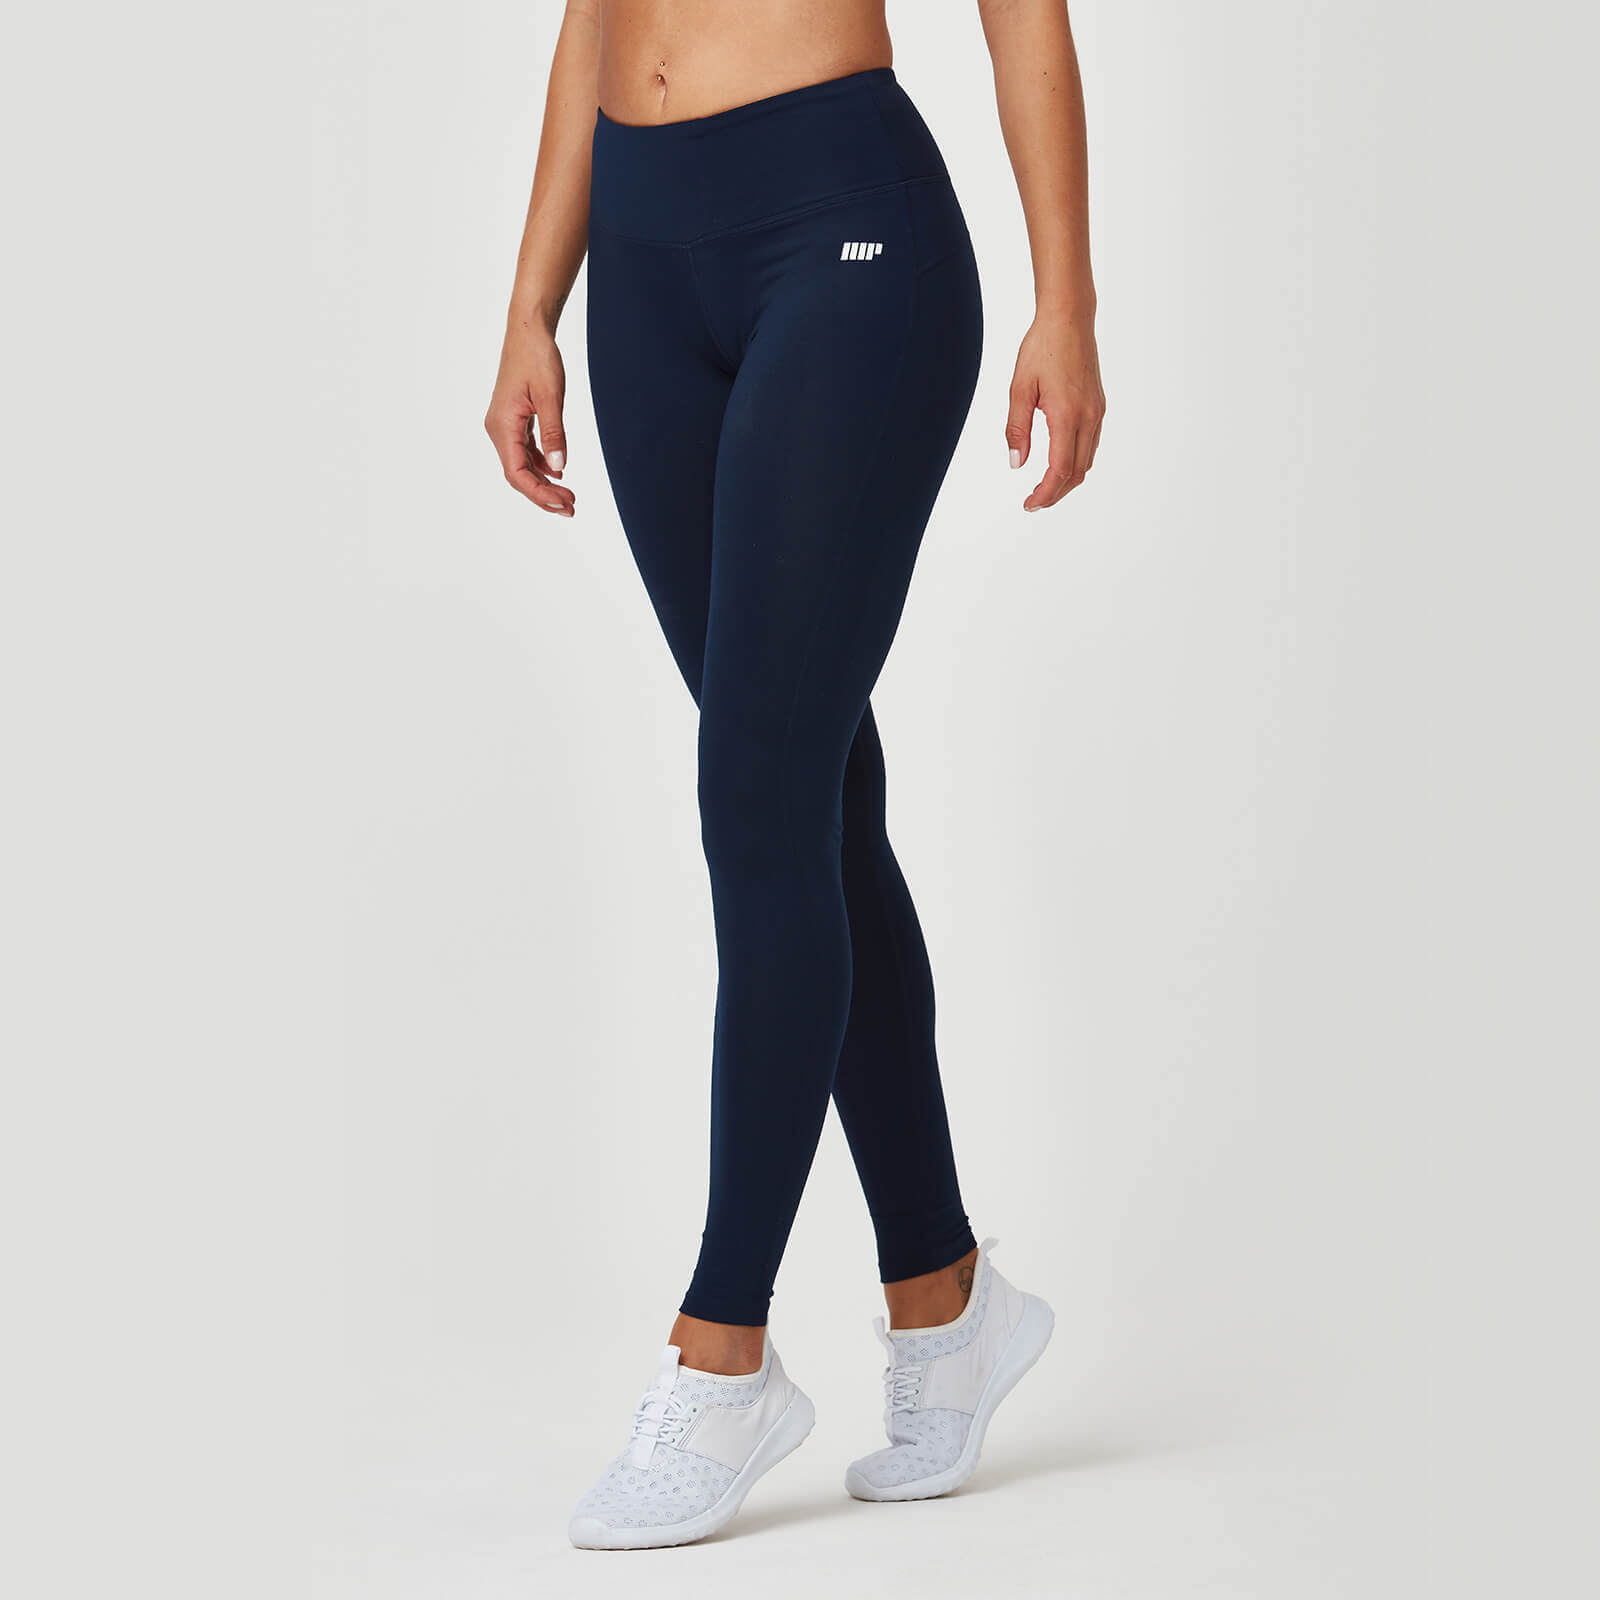 Myprotein Classic Heartbeat Full Length Leggings - Navy - XS